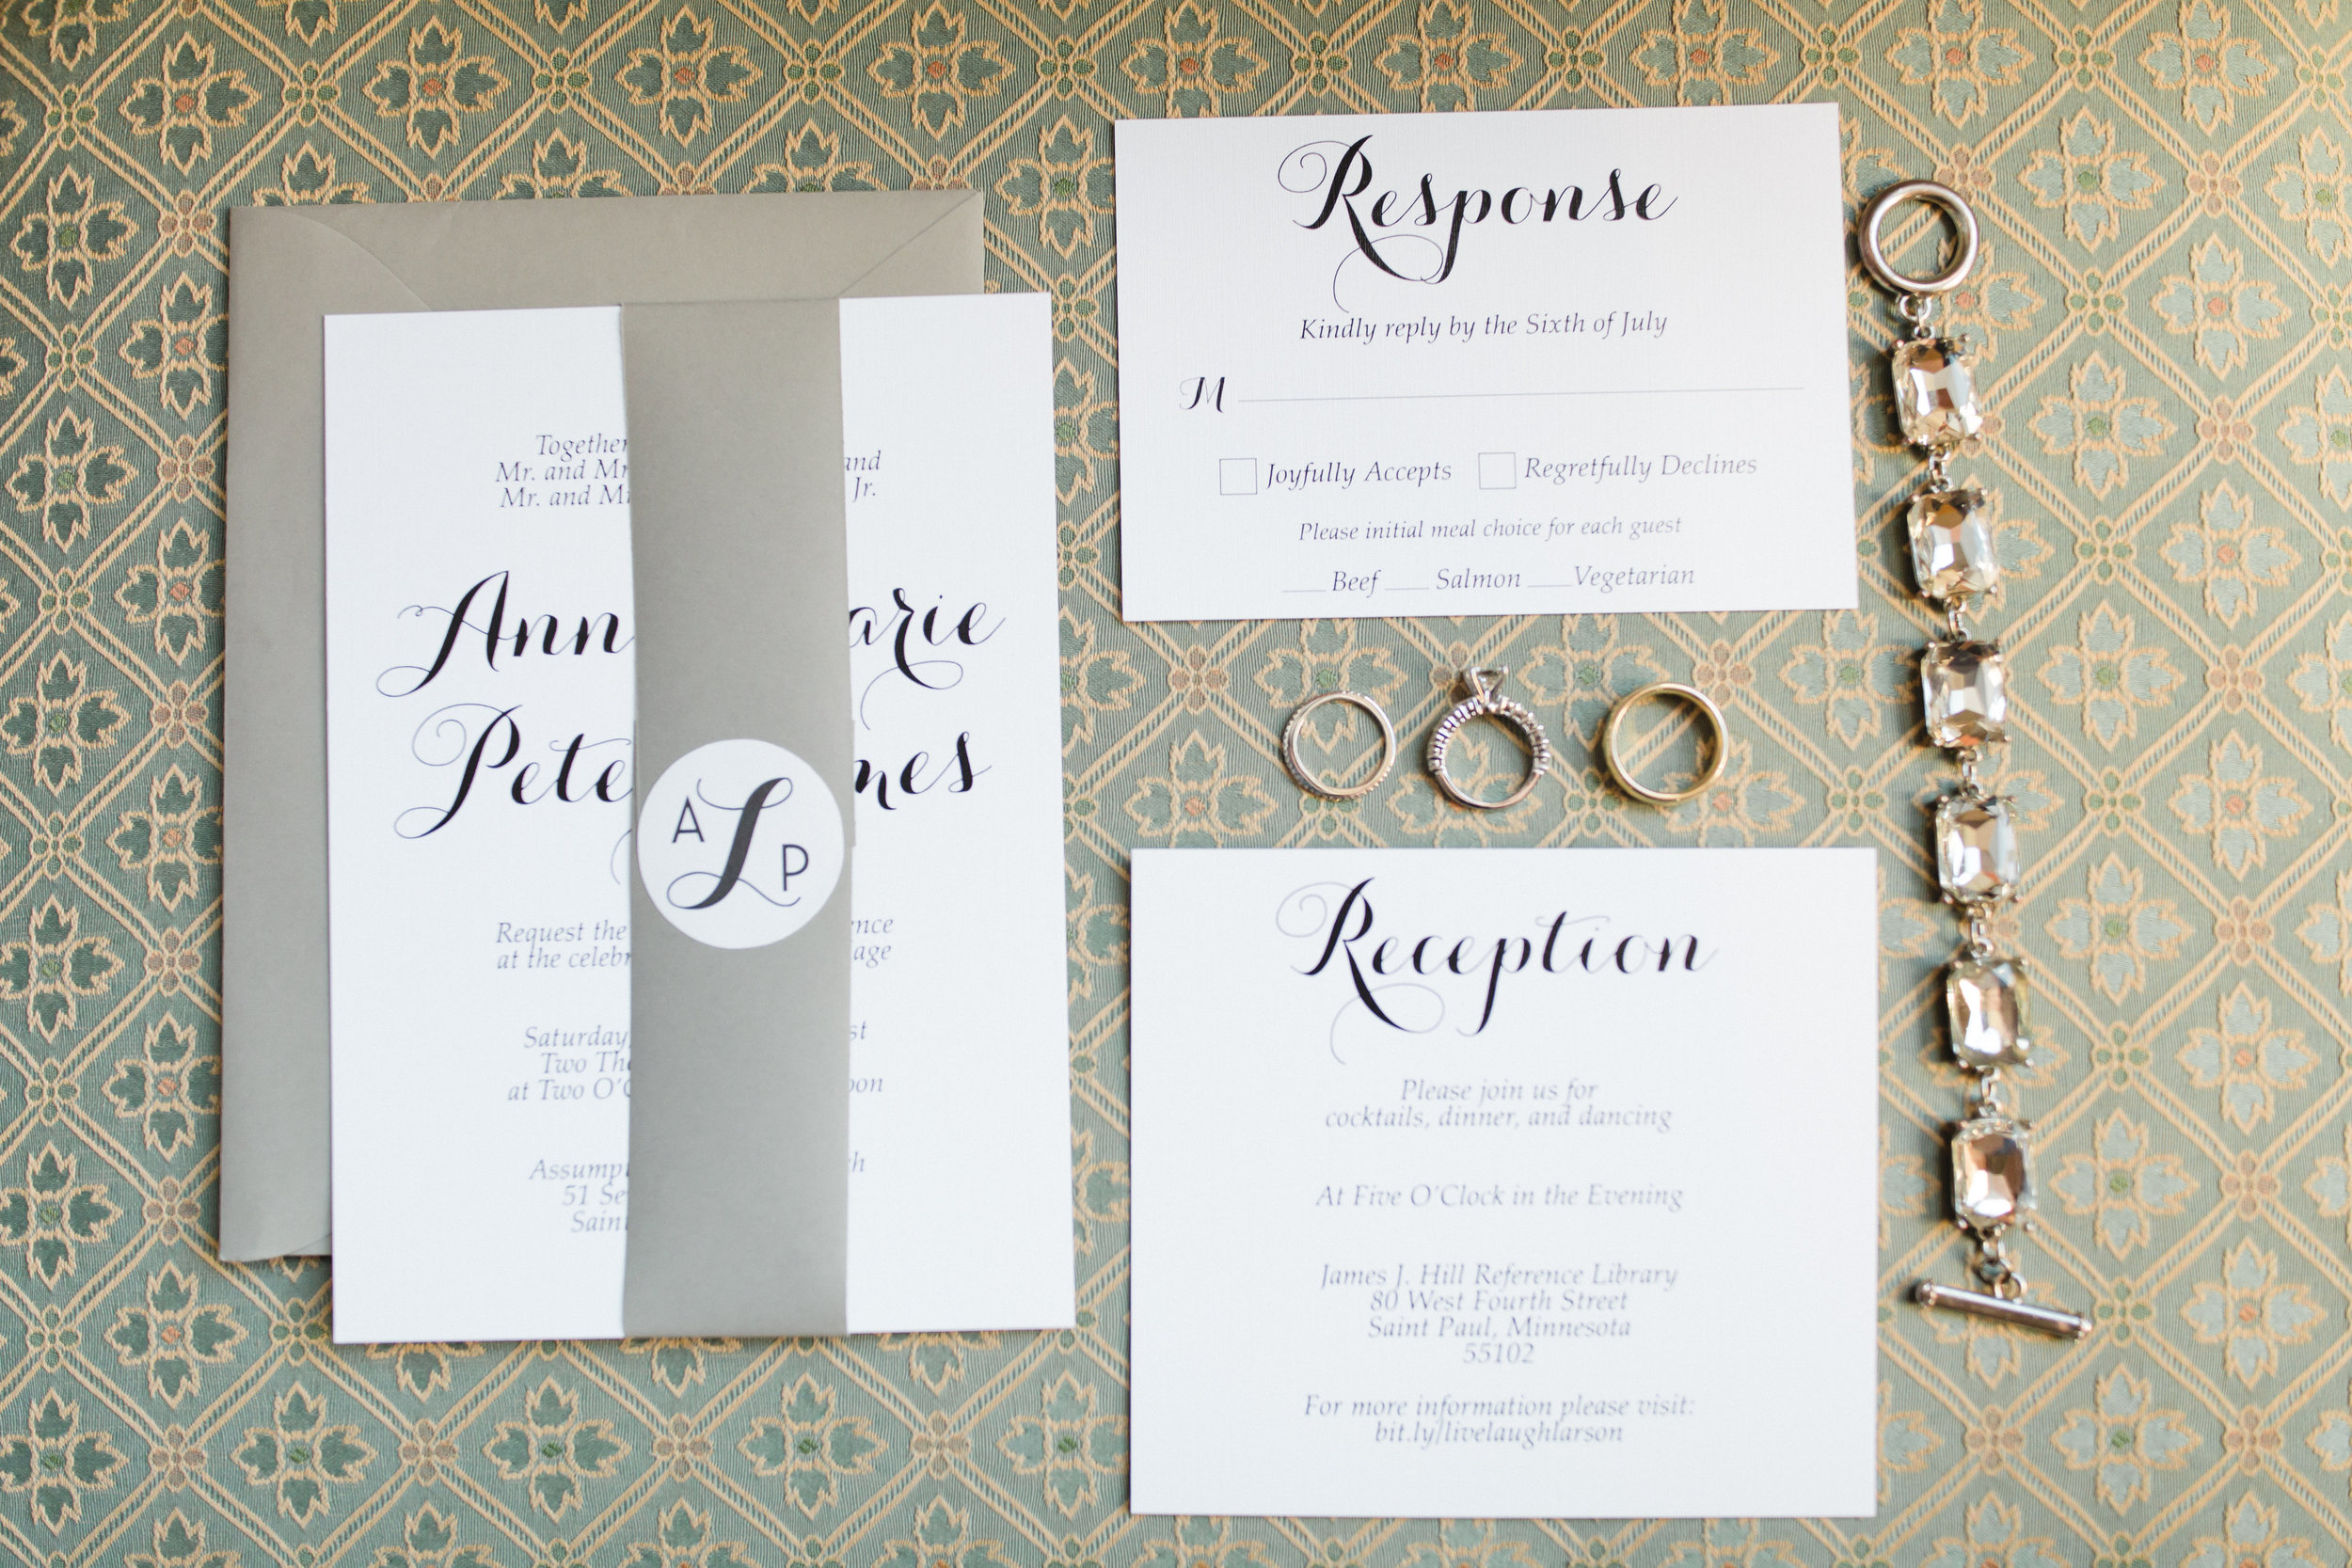 Vendors: Photography: Gina Zeidler | Planner: The Simply Elegant Group, Emily | Ceremony Venue: Church of the Assumption | Reception Venue: James J. Hill Center Library | Hair: Studio 411 | Makeup: Primped | Dress: Posh Bridal Couture | Invites: The Making 89 | Floral: Grace Klein Designs | Designs/Linens: Linen Effects | Caterer: Deco Catering | Cake: Sweet Retreat | Music: Sabby White & The Big 10 | Transportation: Renee's Royal Valet